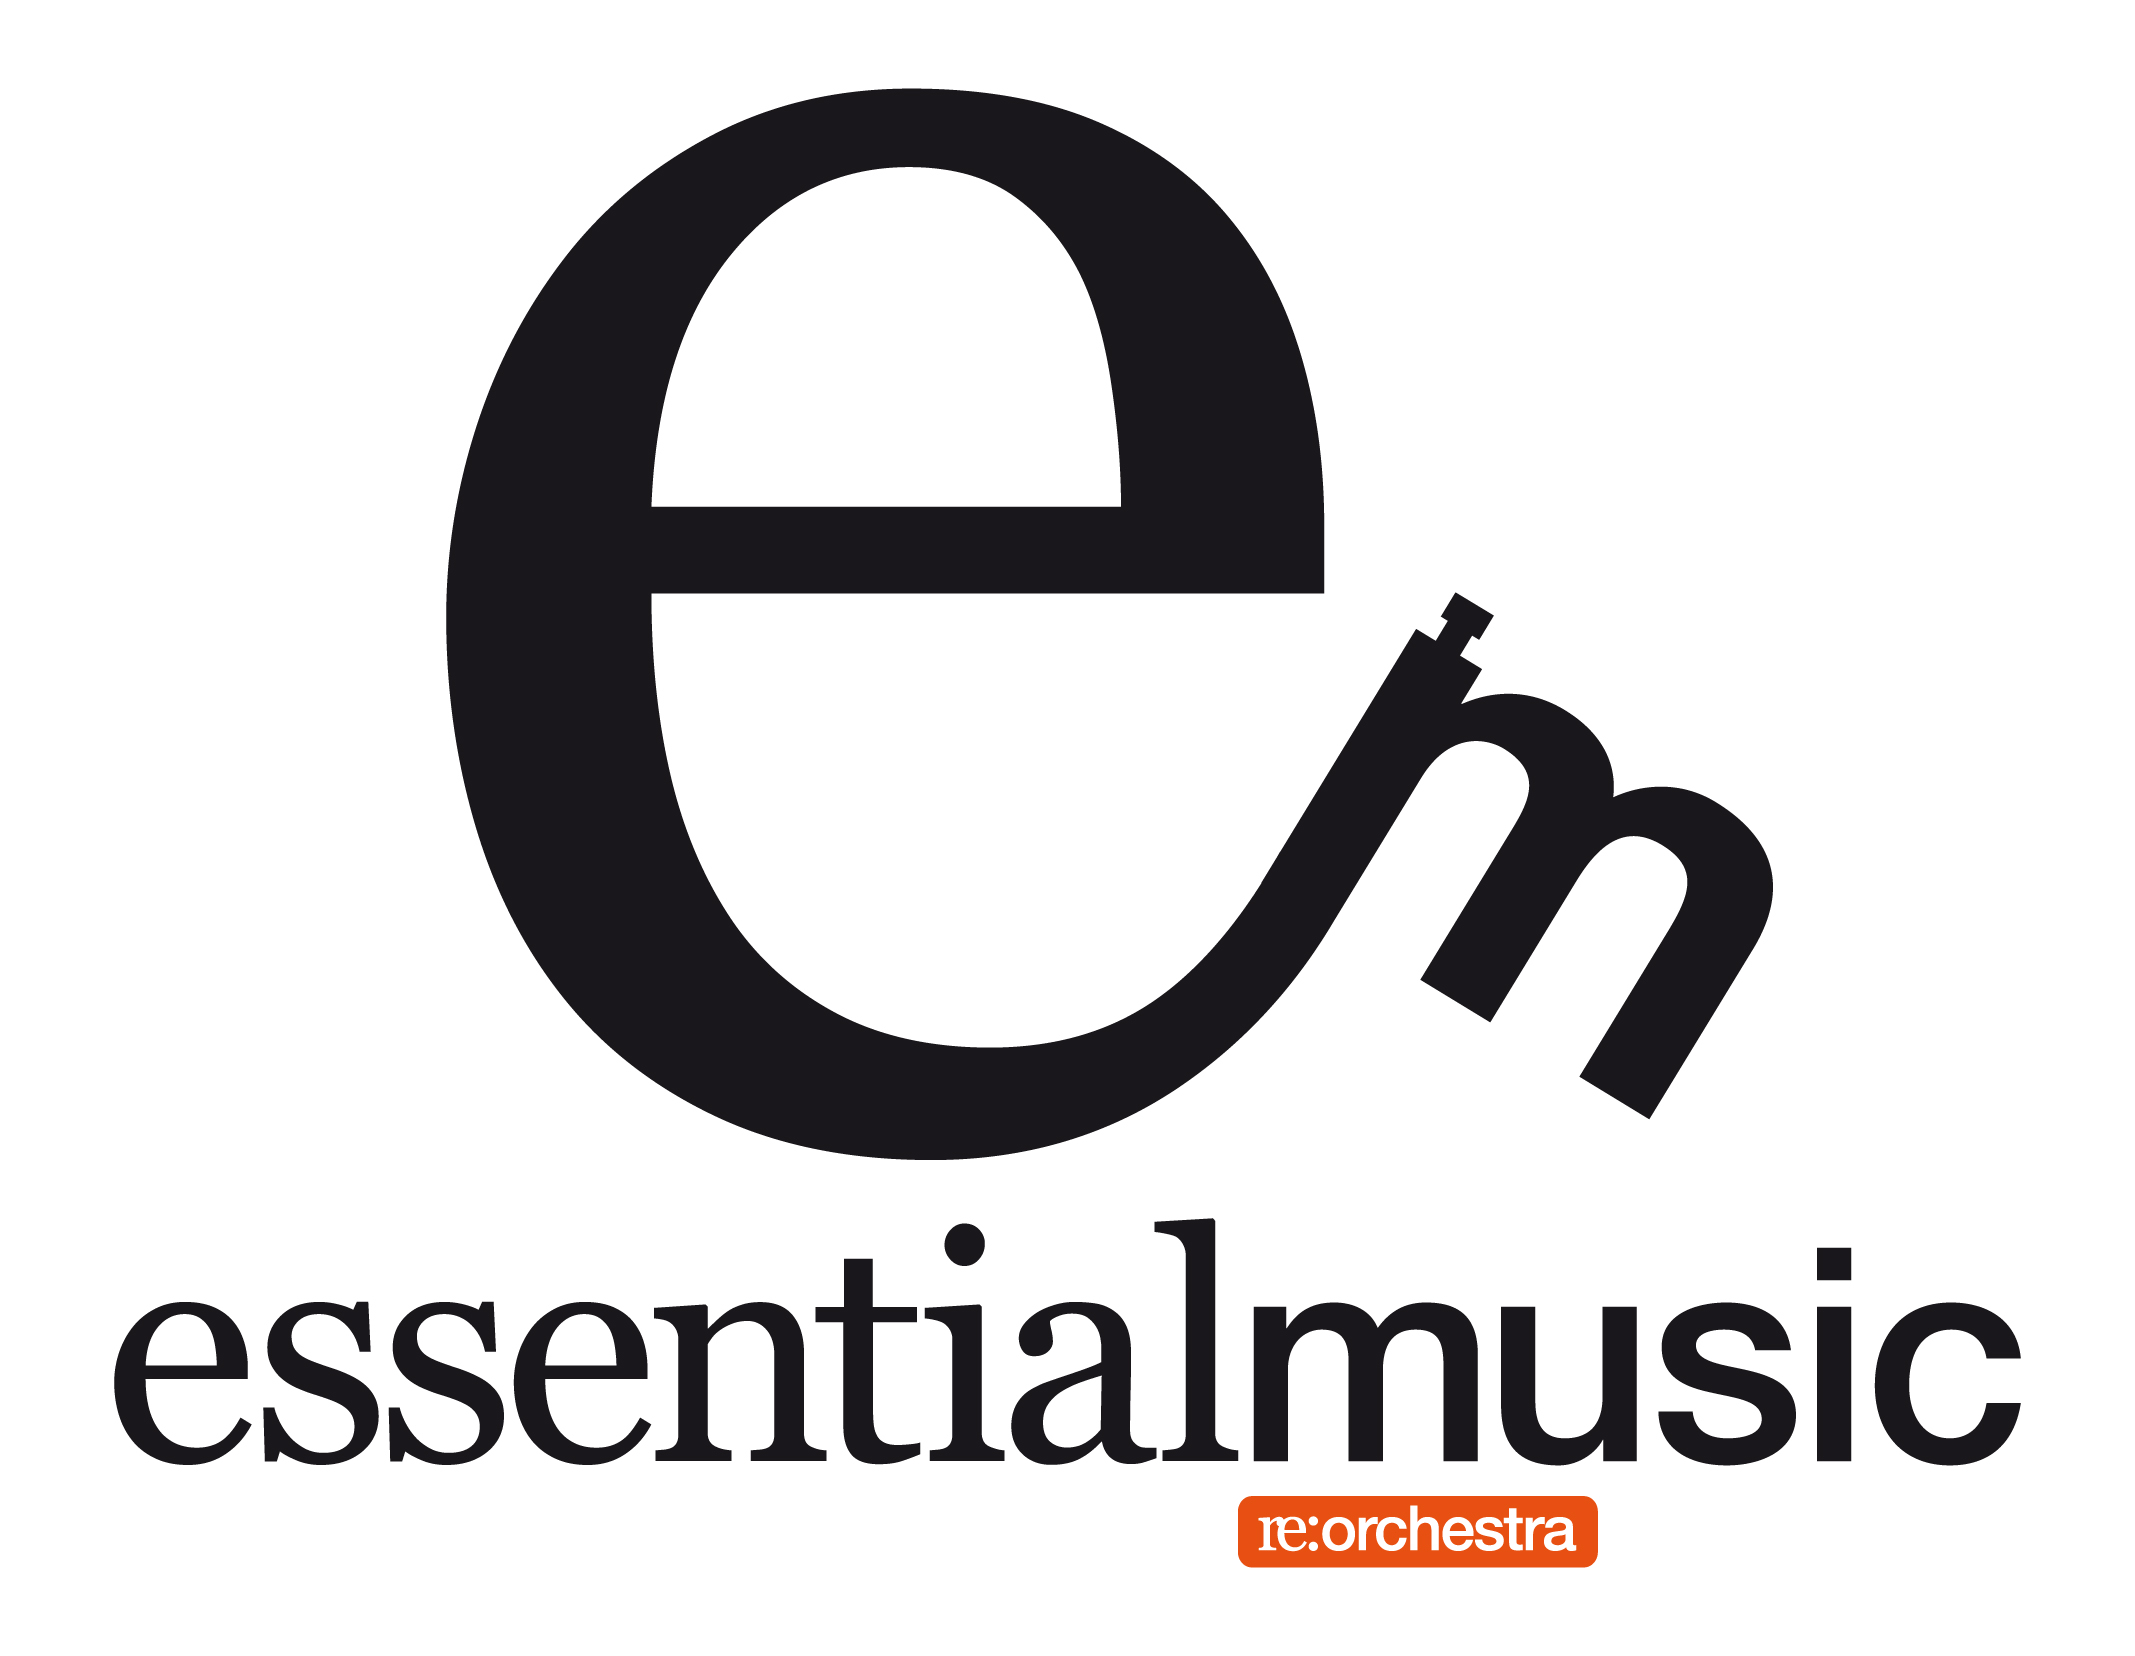 re_essential music logo